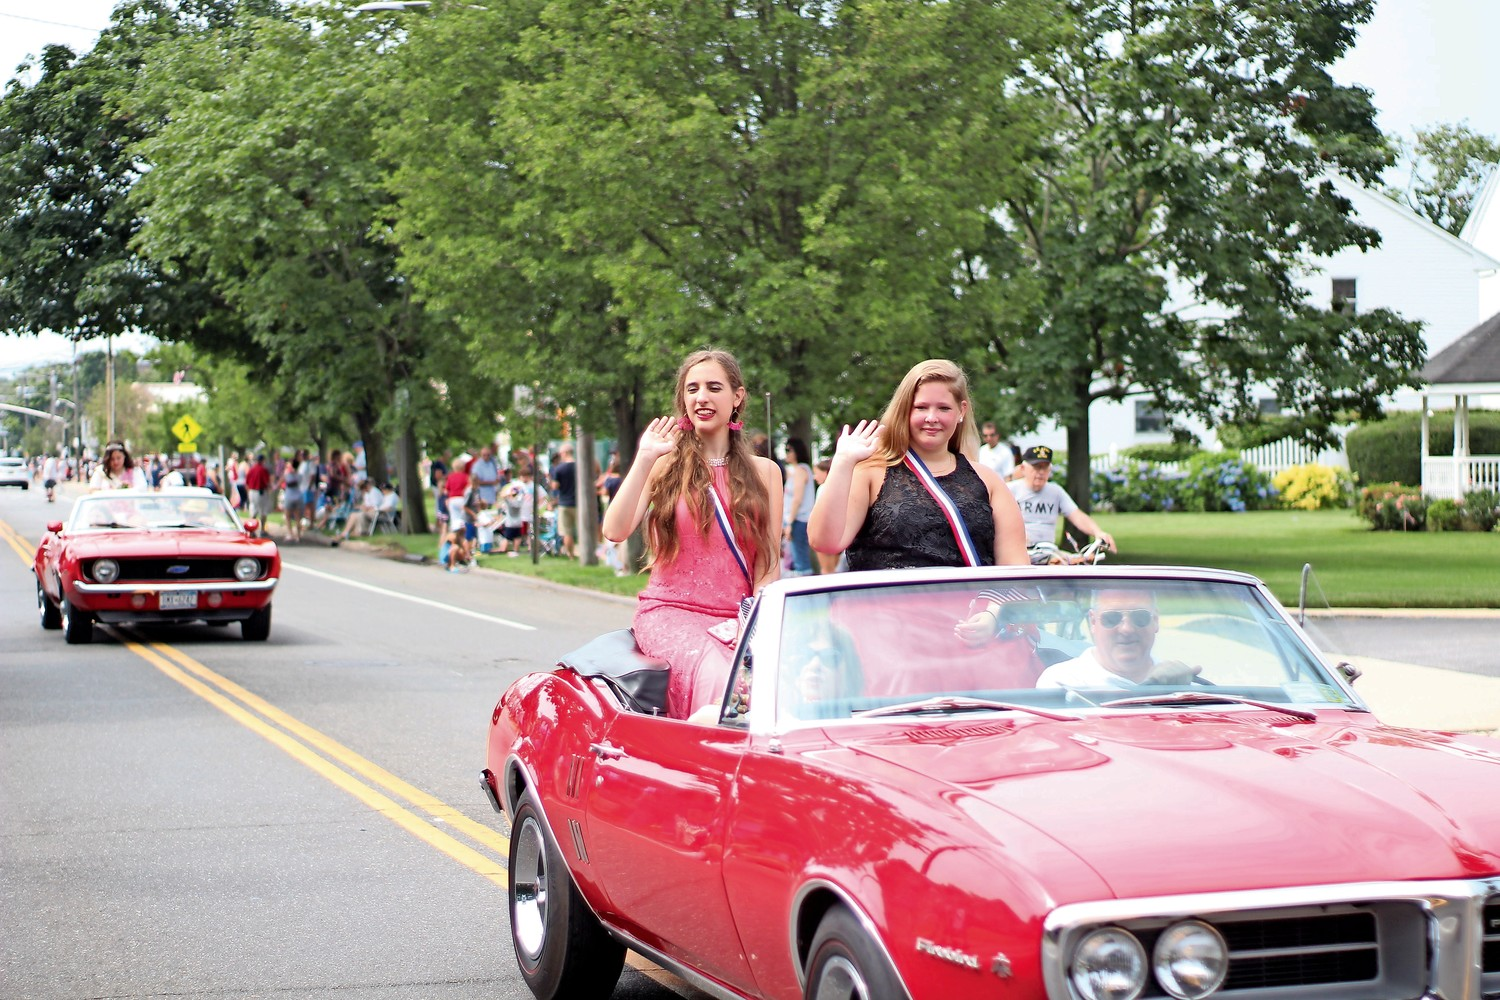 Before she was crowned Miss Wantagh, Ashley Bailey, right, rode in the Wantagh Fourth of July parade with future Ambassador Marisa DeVito.